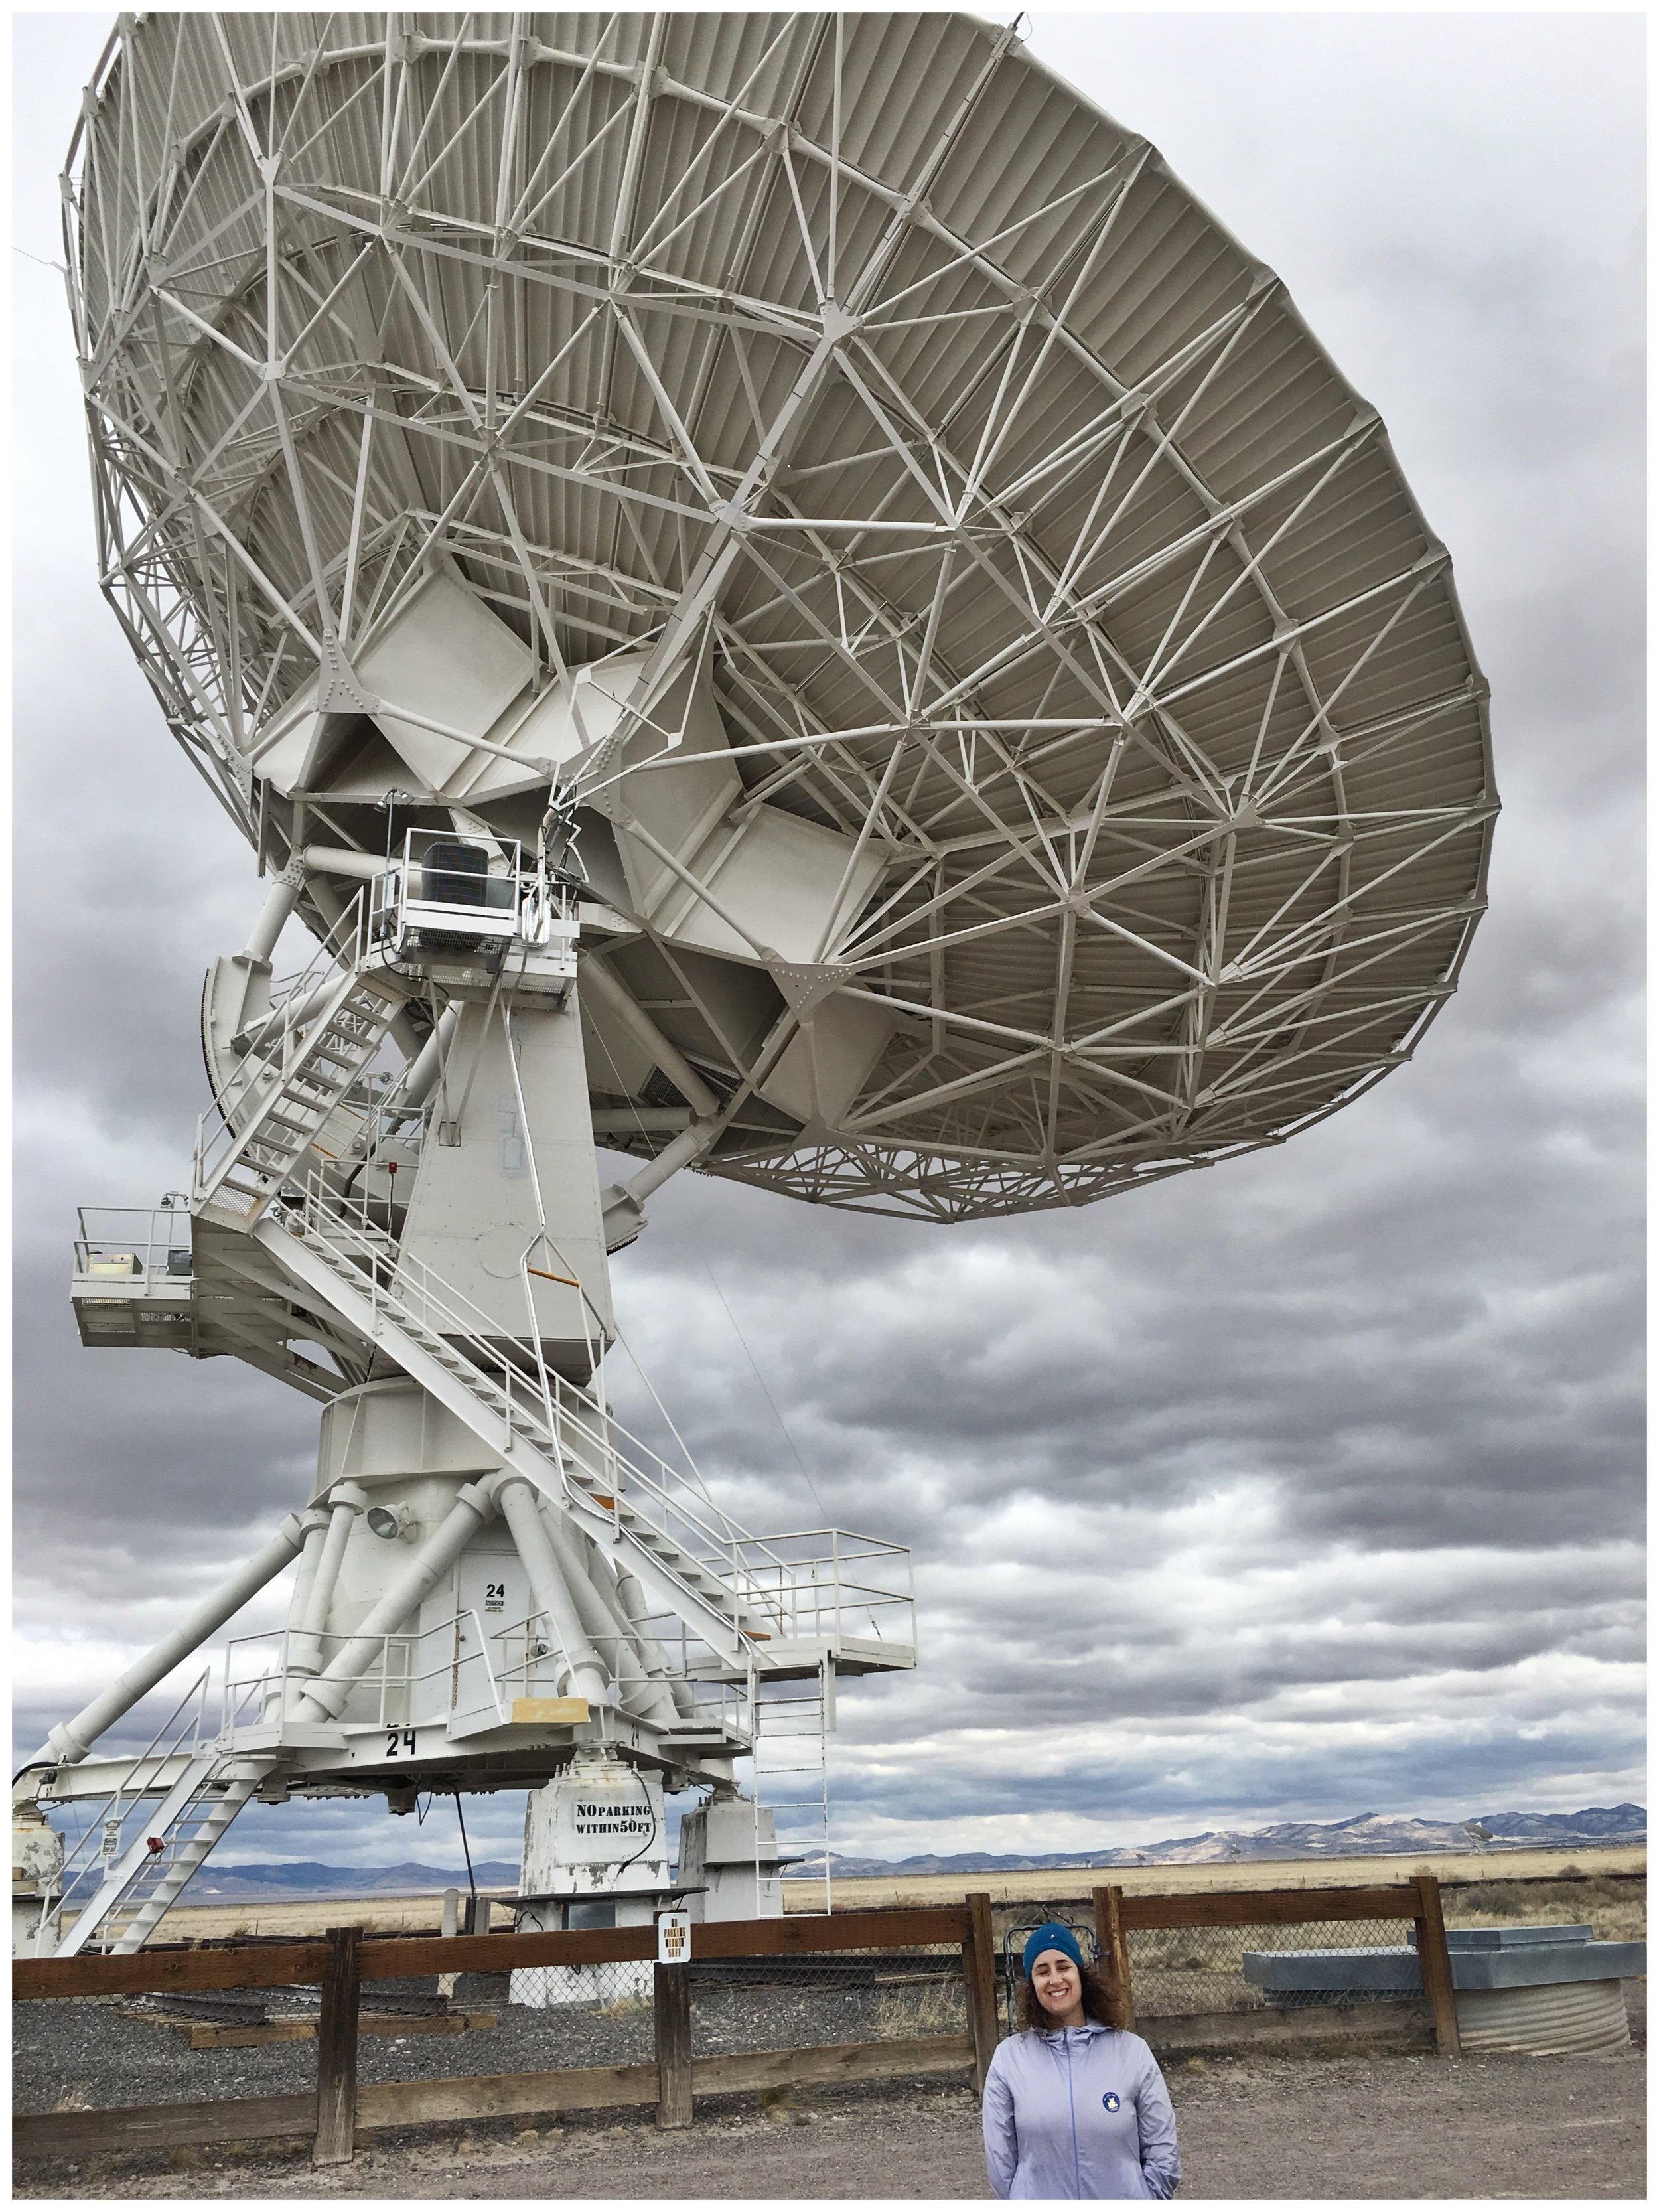 NRAO in New Mexico